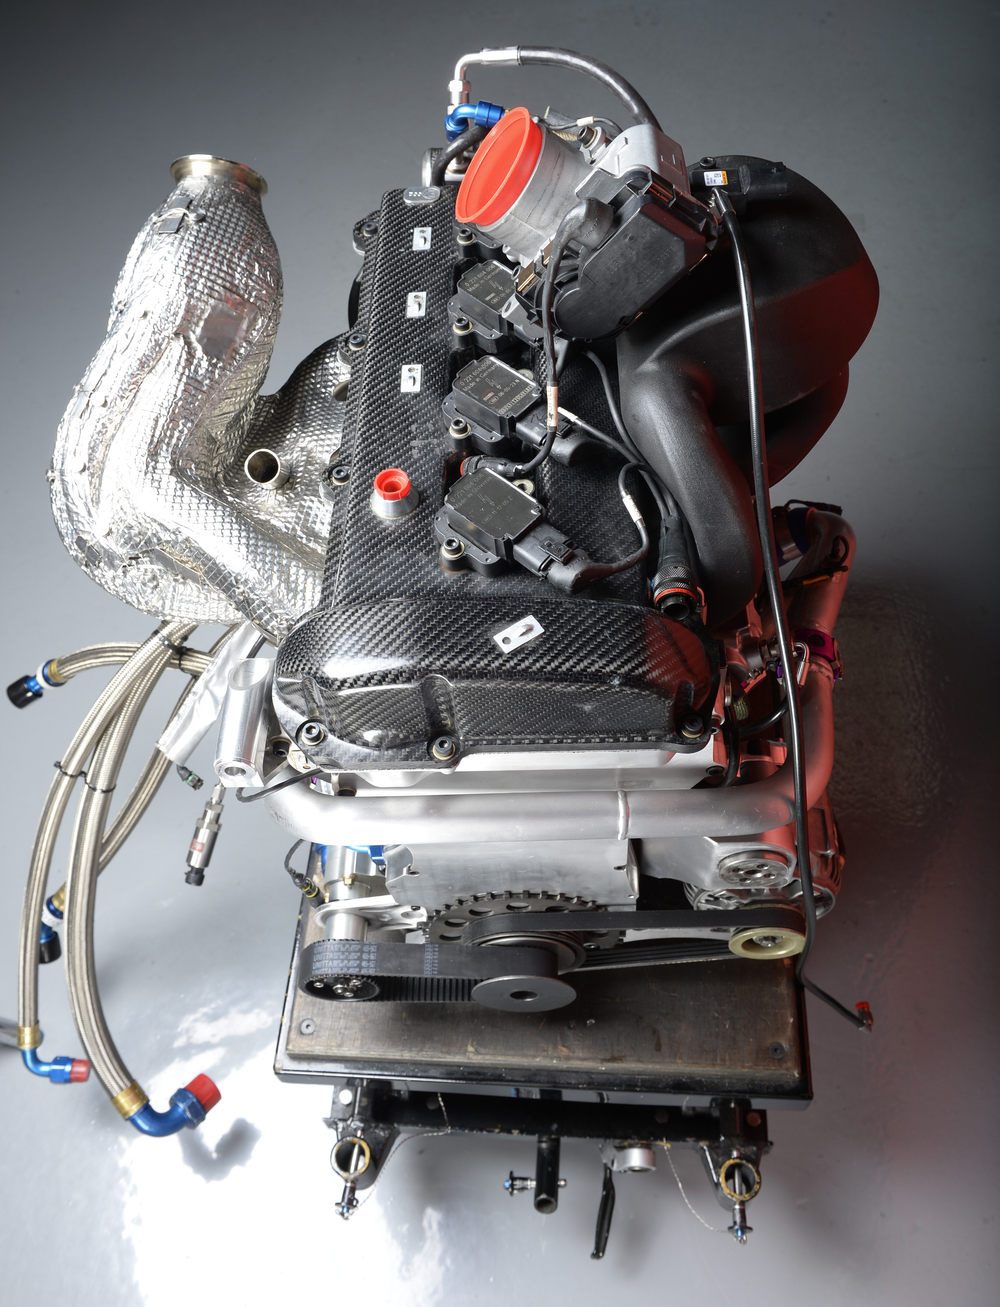 The DeltaWing's engine